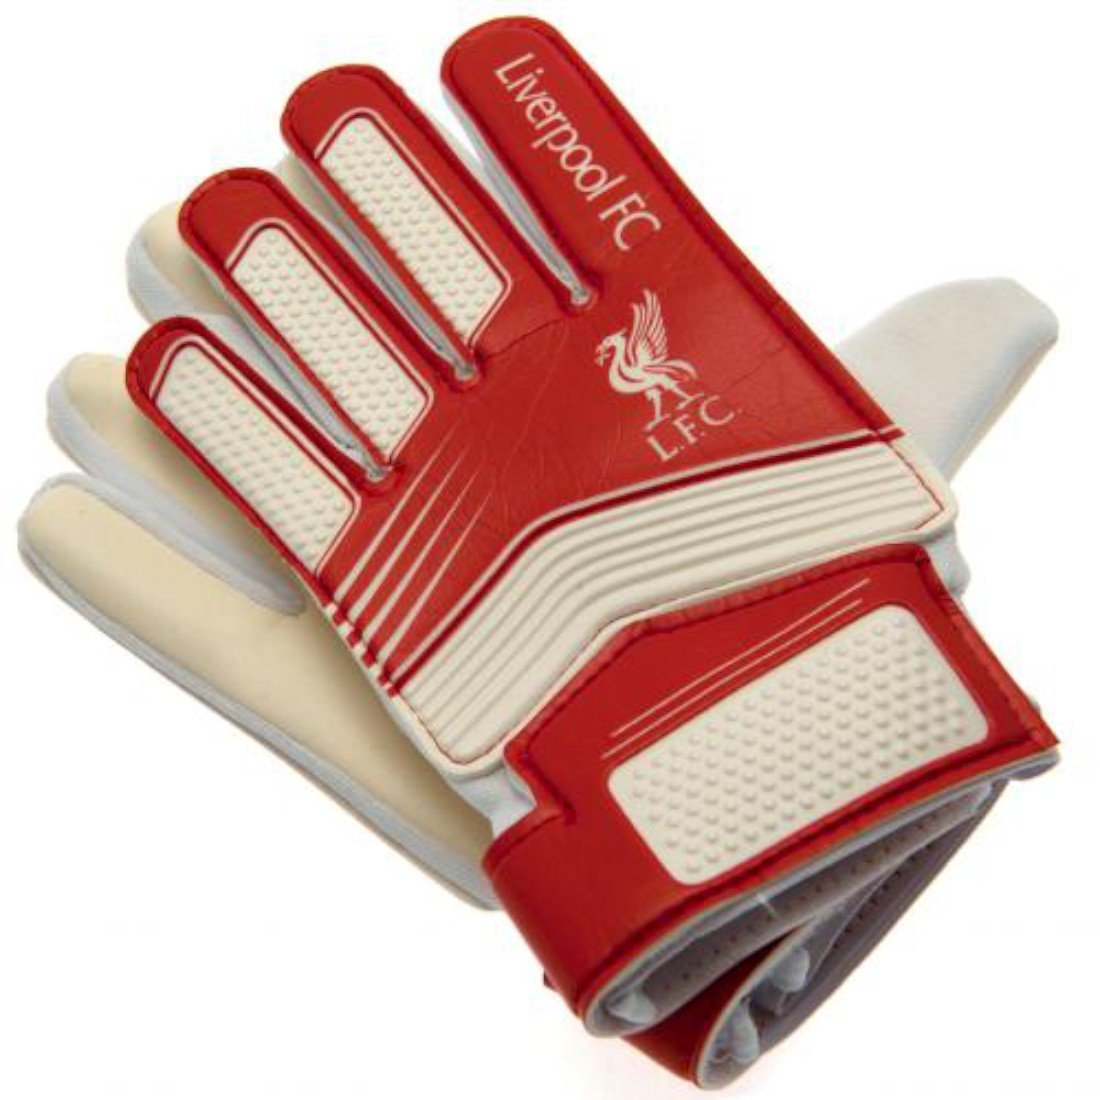 Liverpool Boy LI04852 Spike Goalkeeper Gloves, Multi-Colour Hy-Pro International Ltd